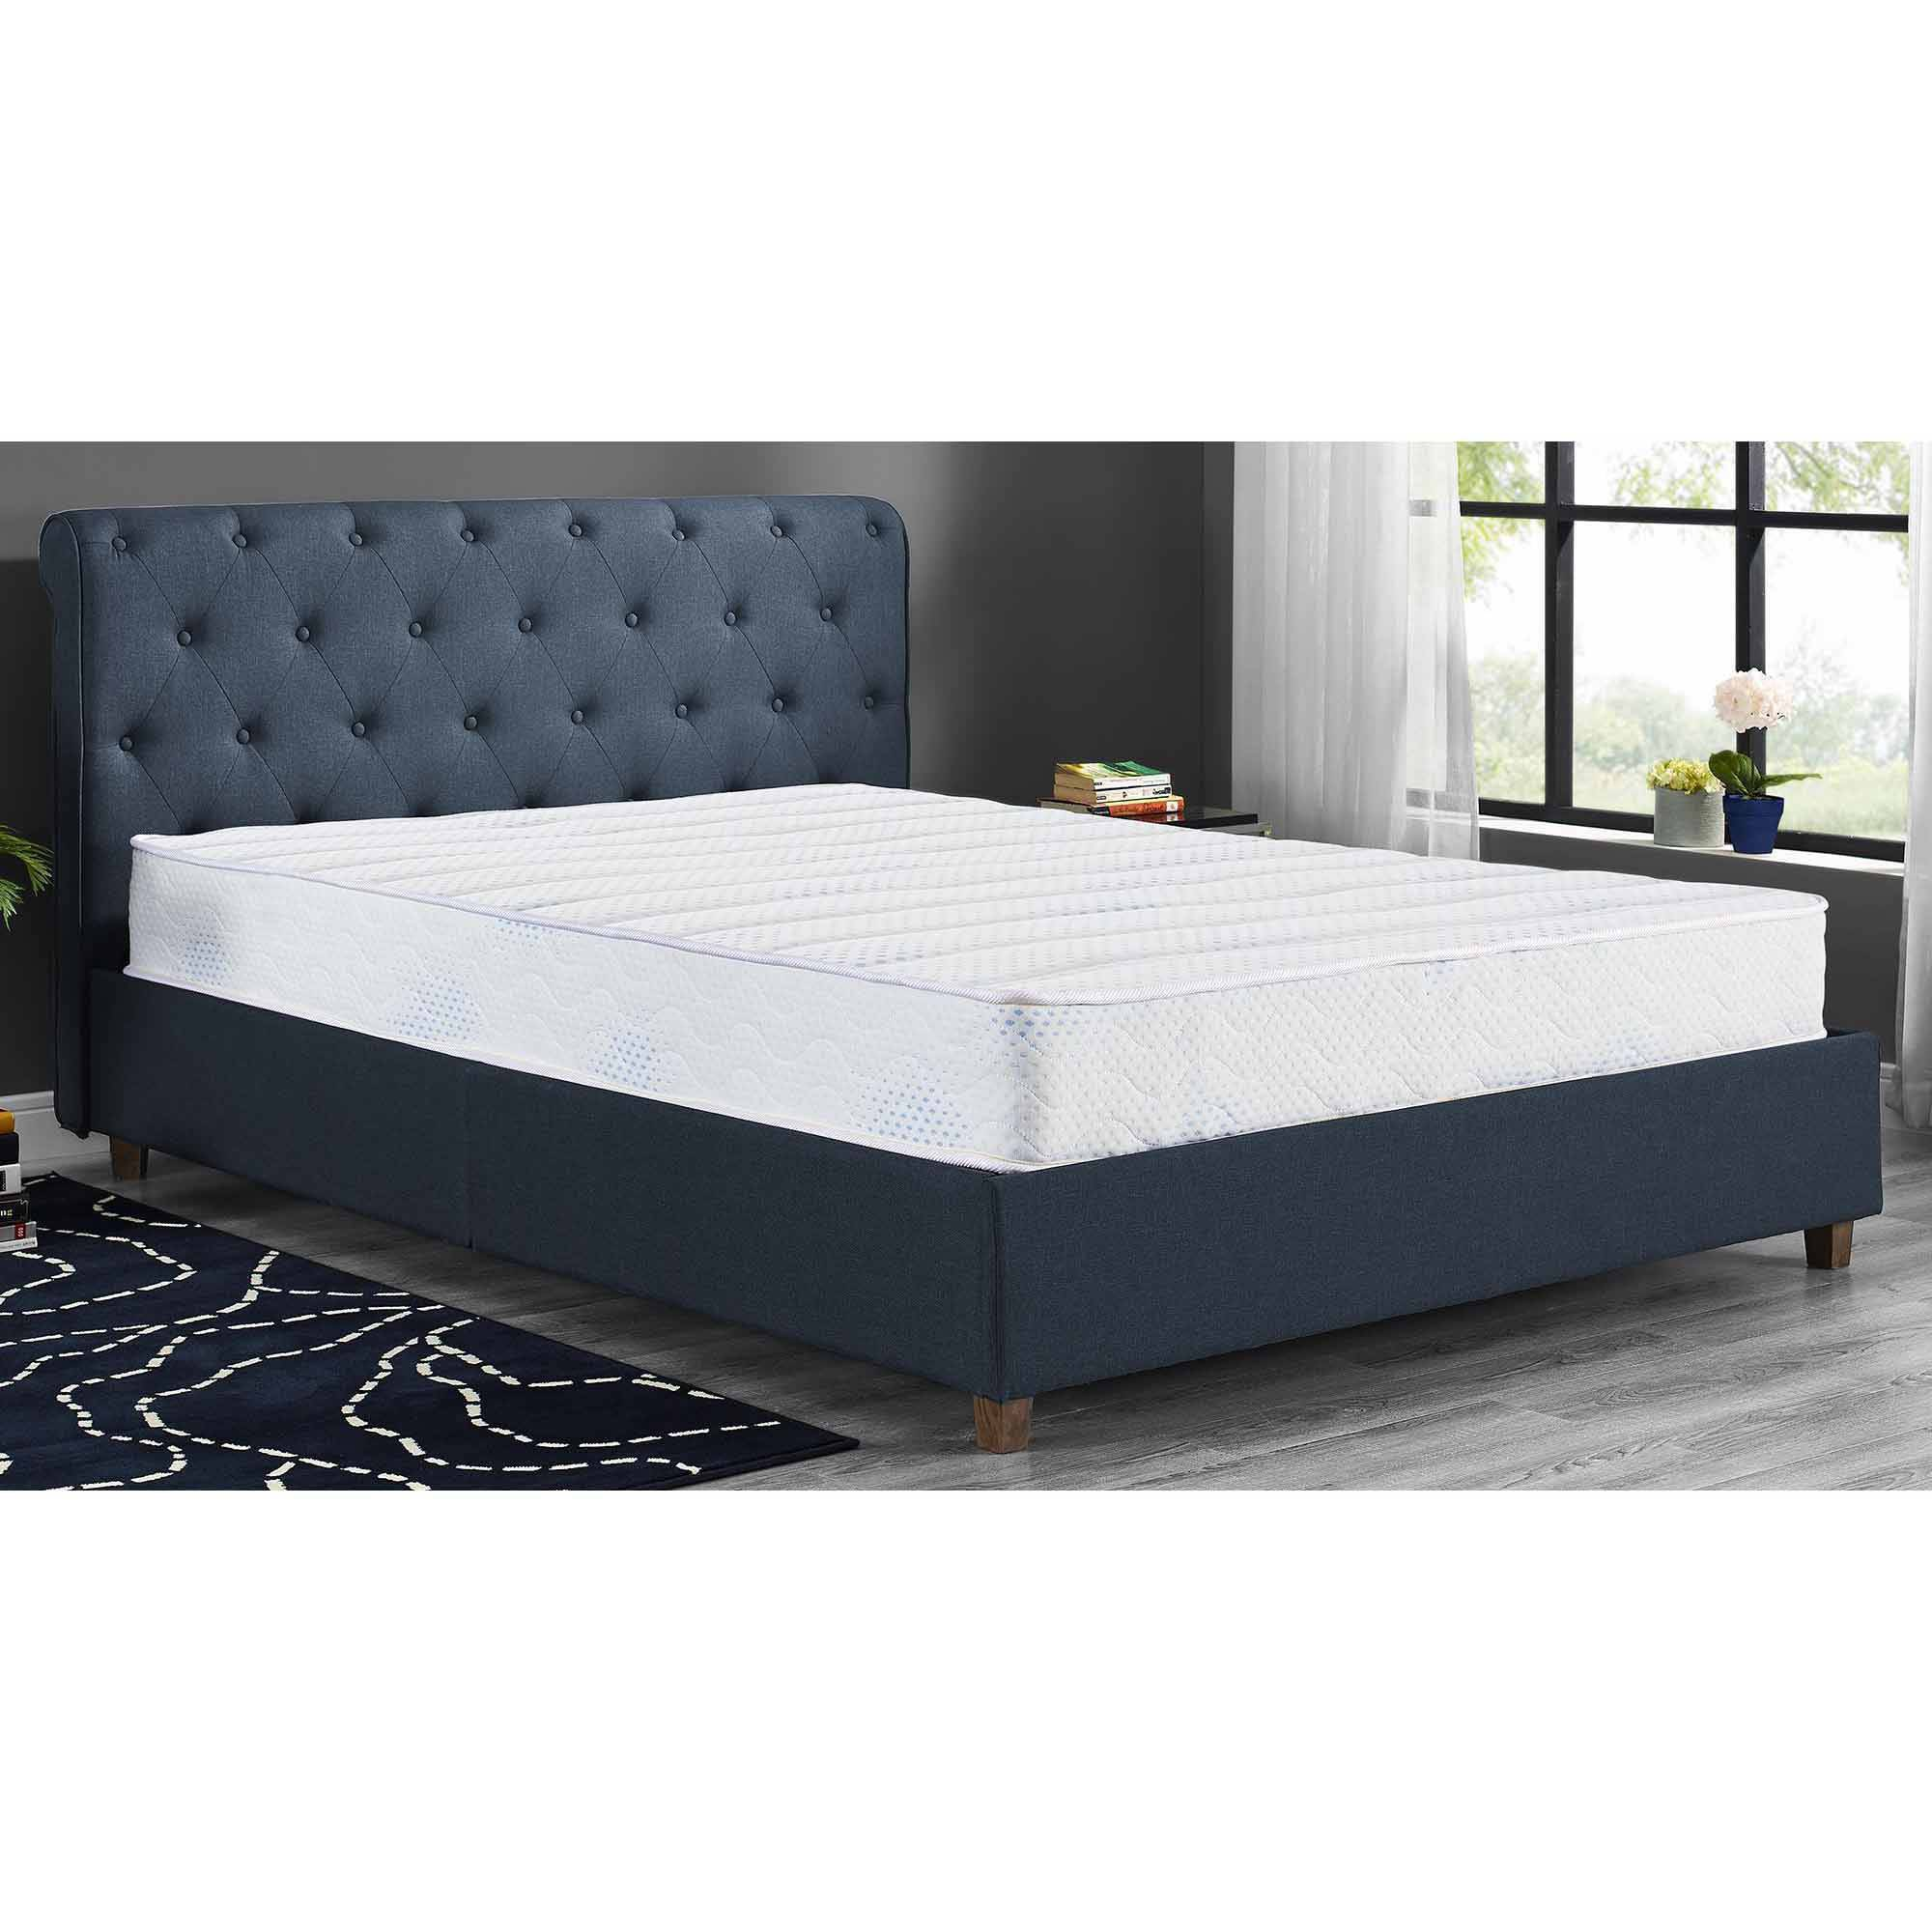 "Mainstays 8"" Independently Encased Coil Mattress, Multiple Sizes"